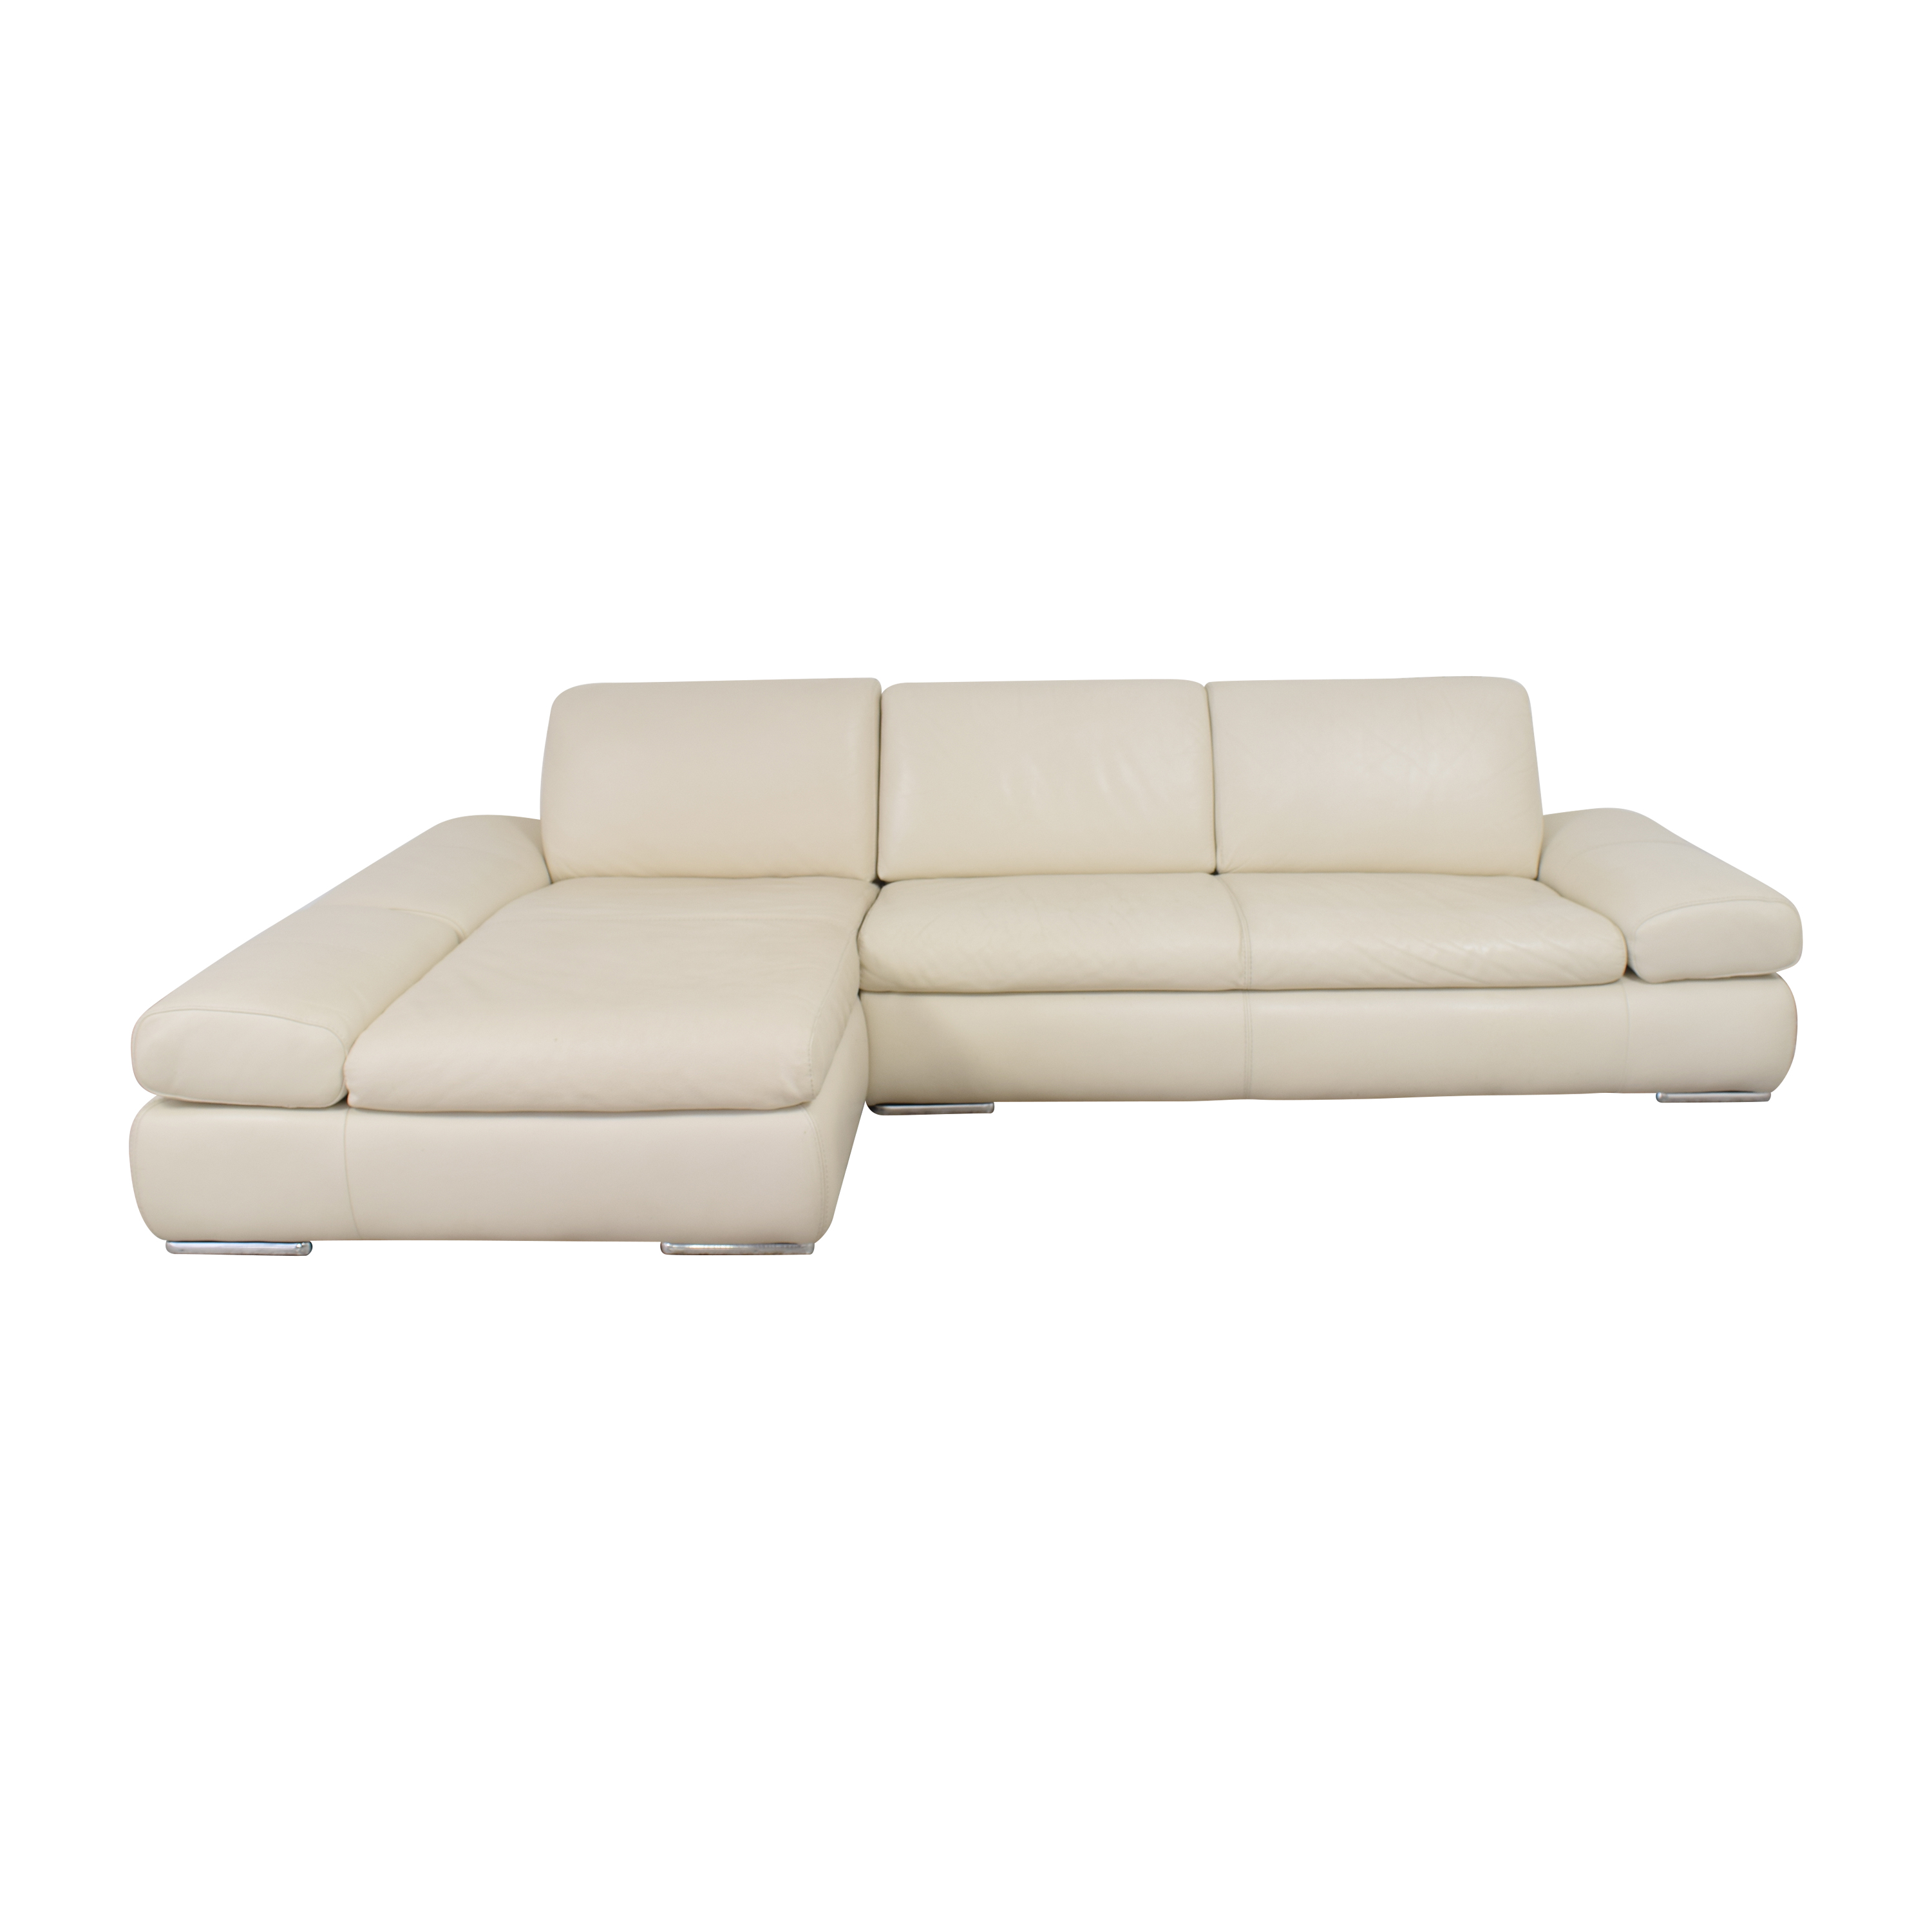 Bloomingdale's Bloomingdale's Sectional Sofa with Chaise second hand